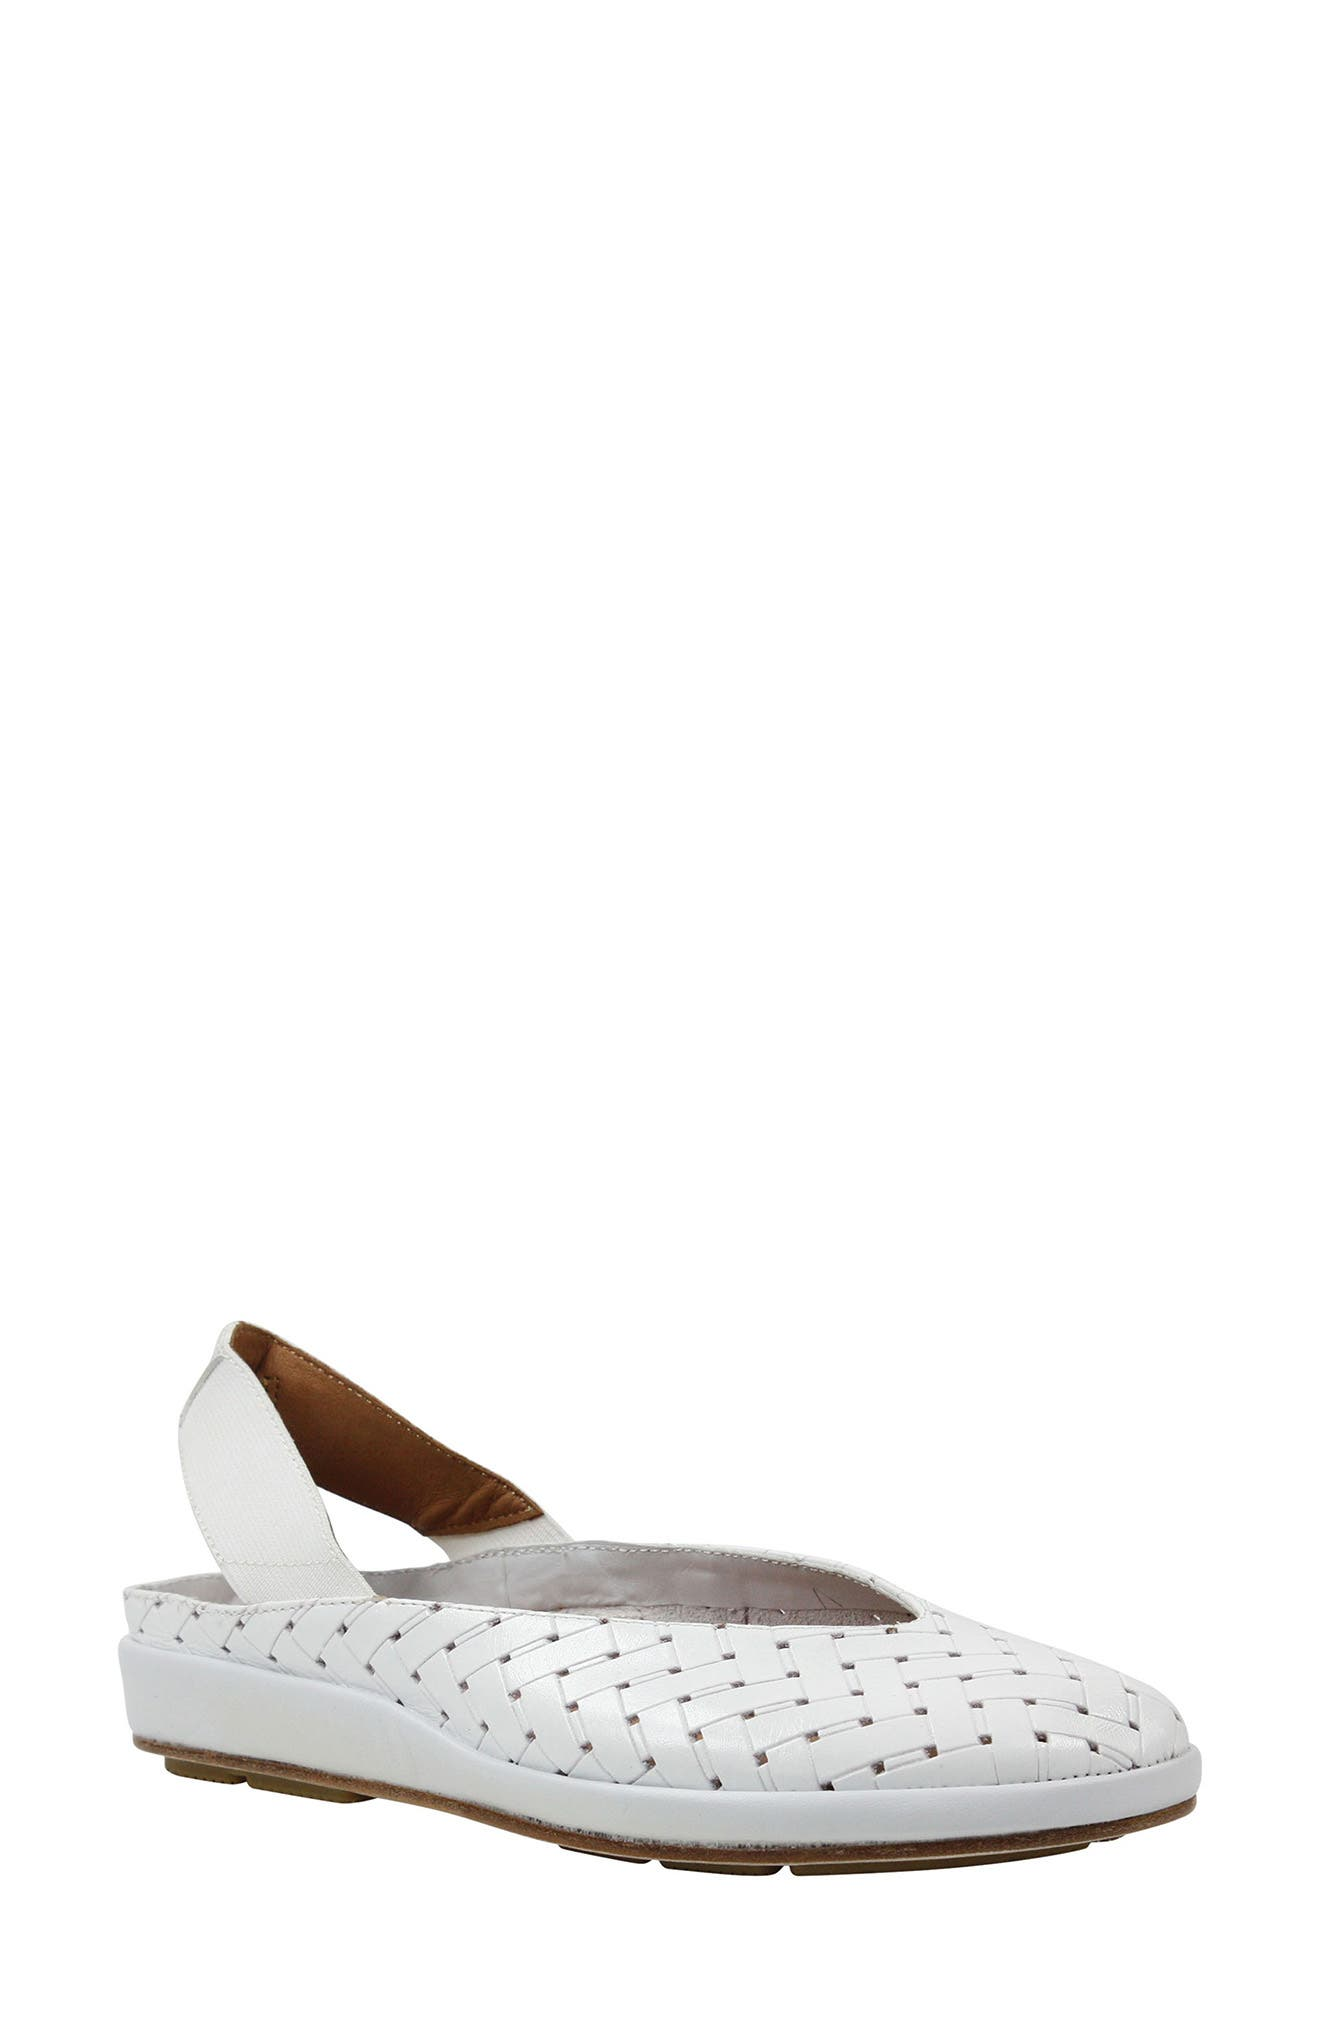 'Cypris' Slingback Wedge,                             Main thumbnail 1, color,                             White Leather